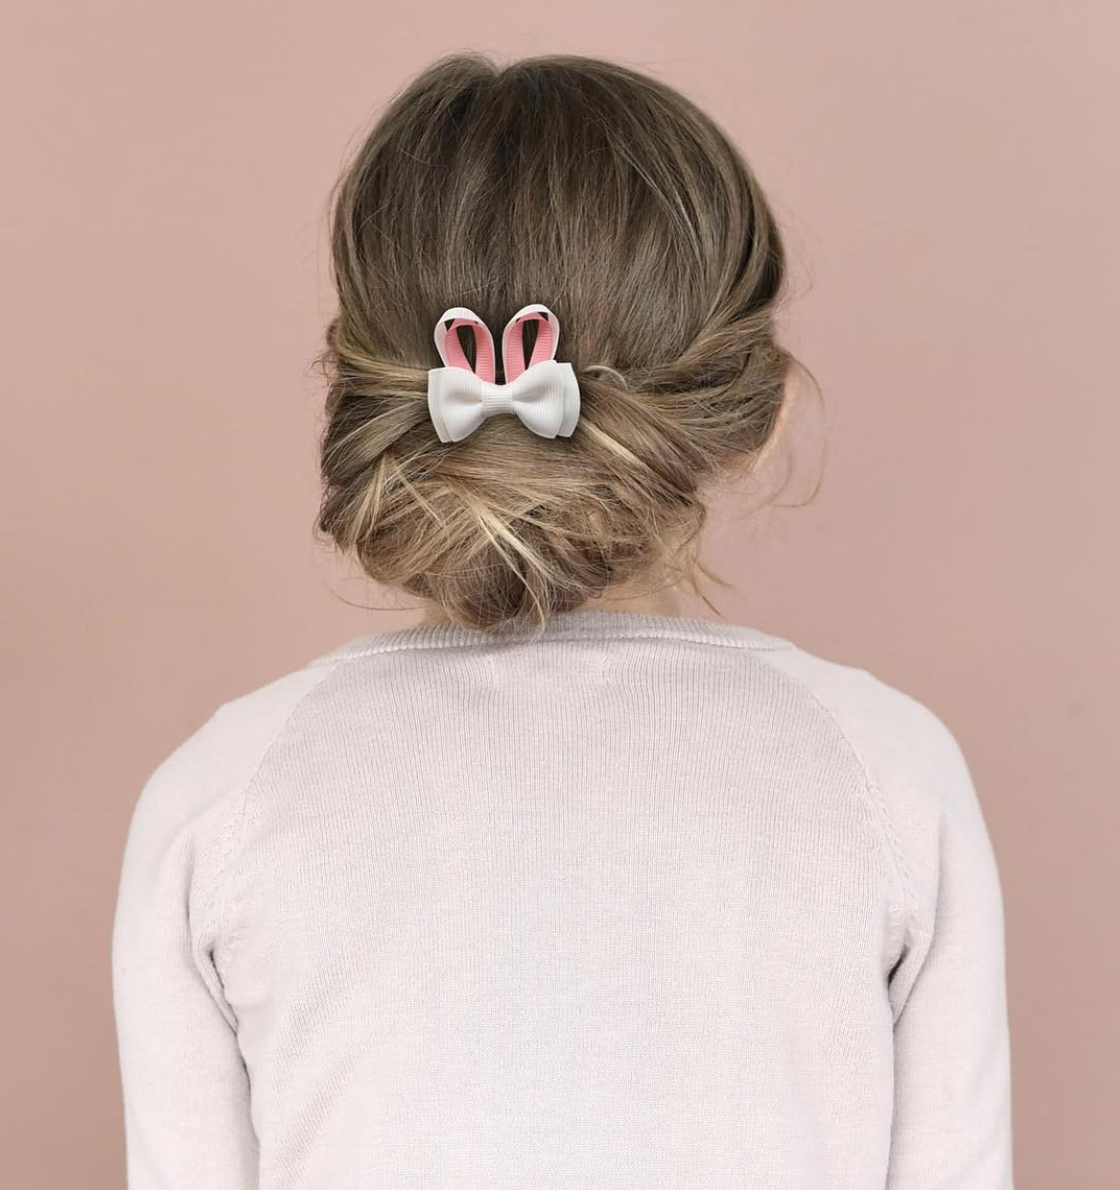 messy bun with hair bow